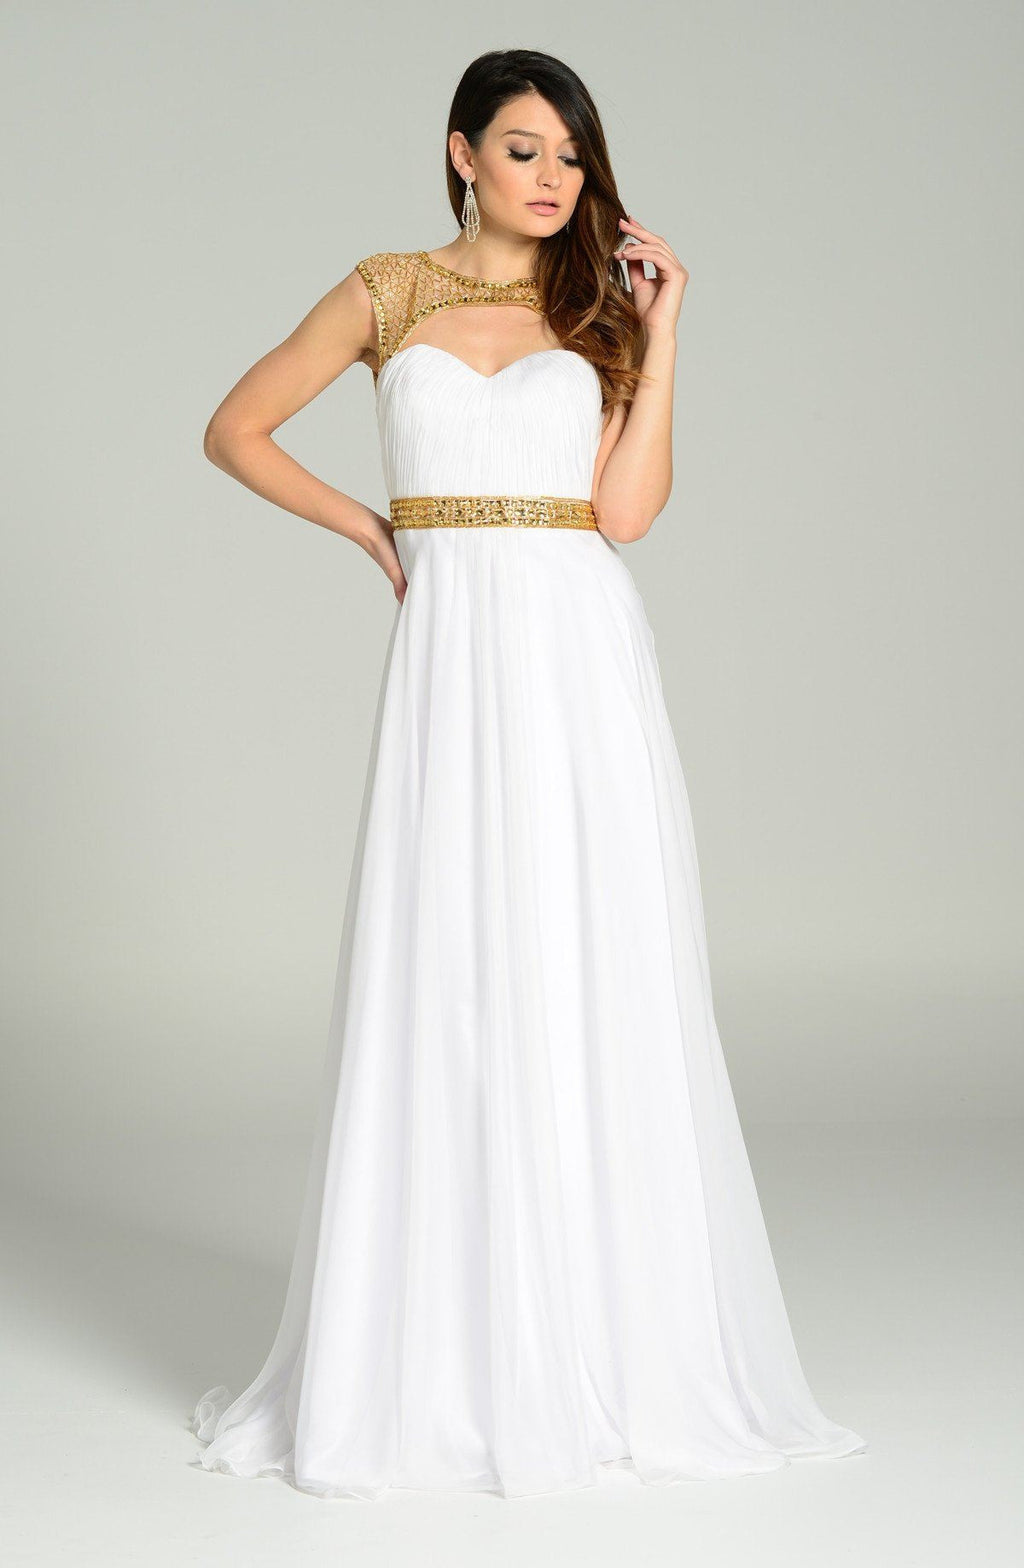 Elegant evening dress 101- 7182 - Simply Fab Dress